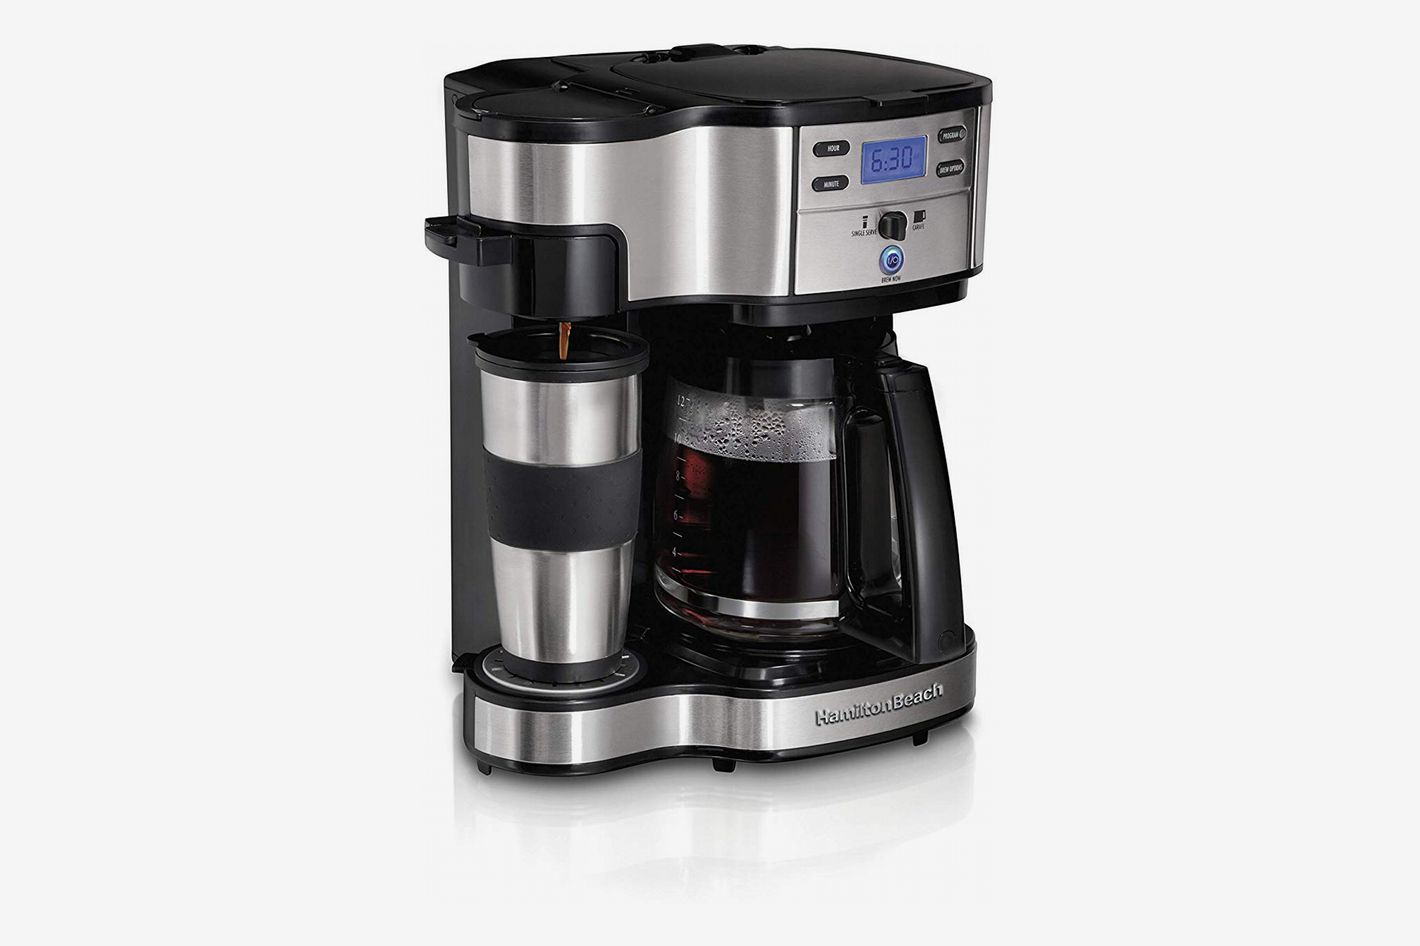 Top 10 coffee machines in the world